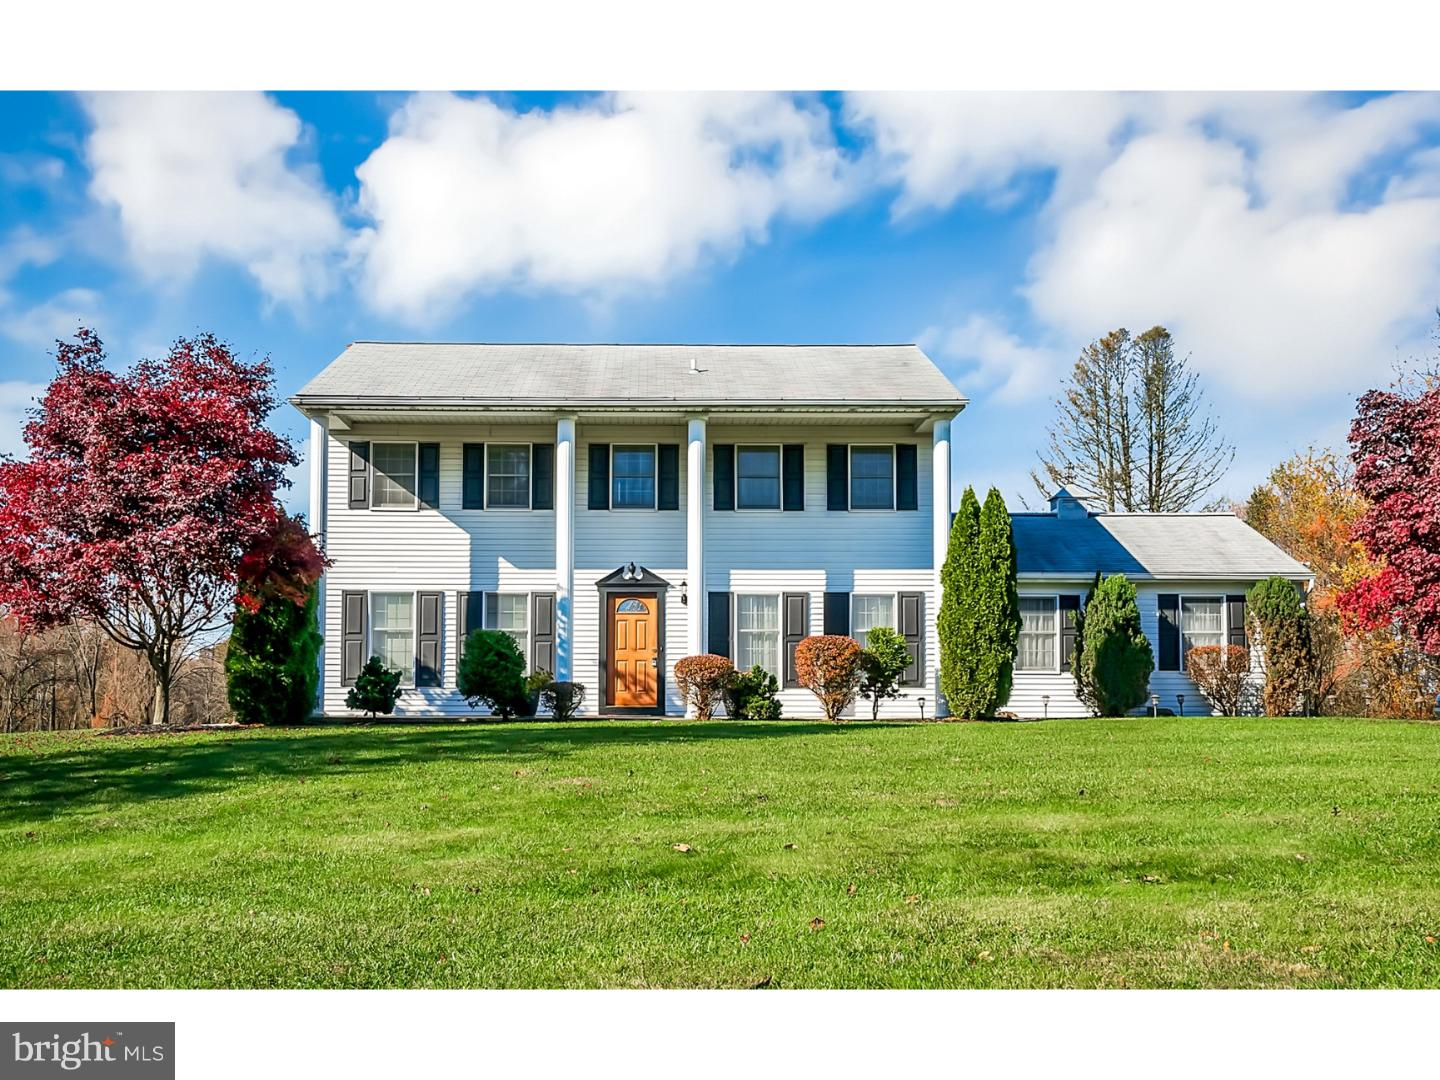 203 HUNTERS RUN ROAD, HONEY BROOK, PA 19344